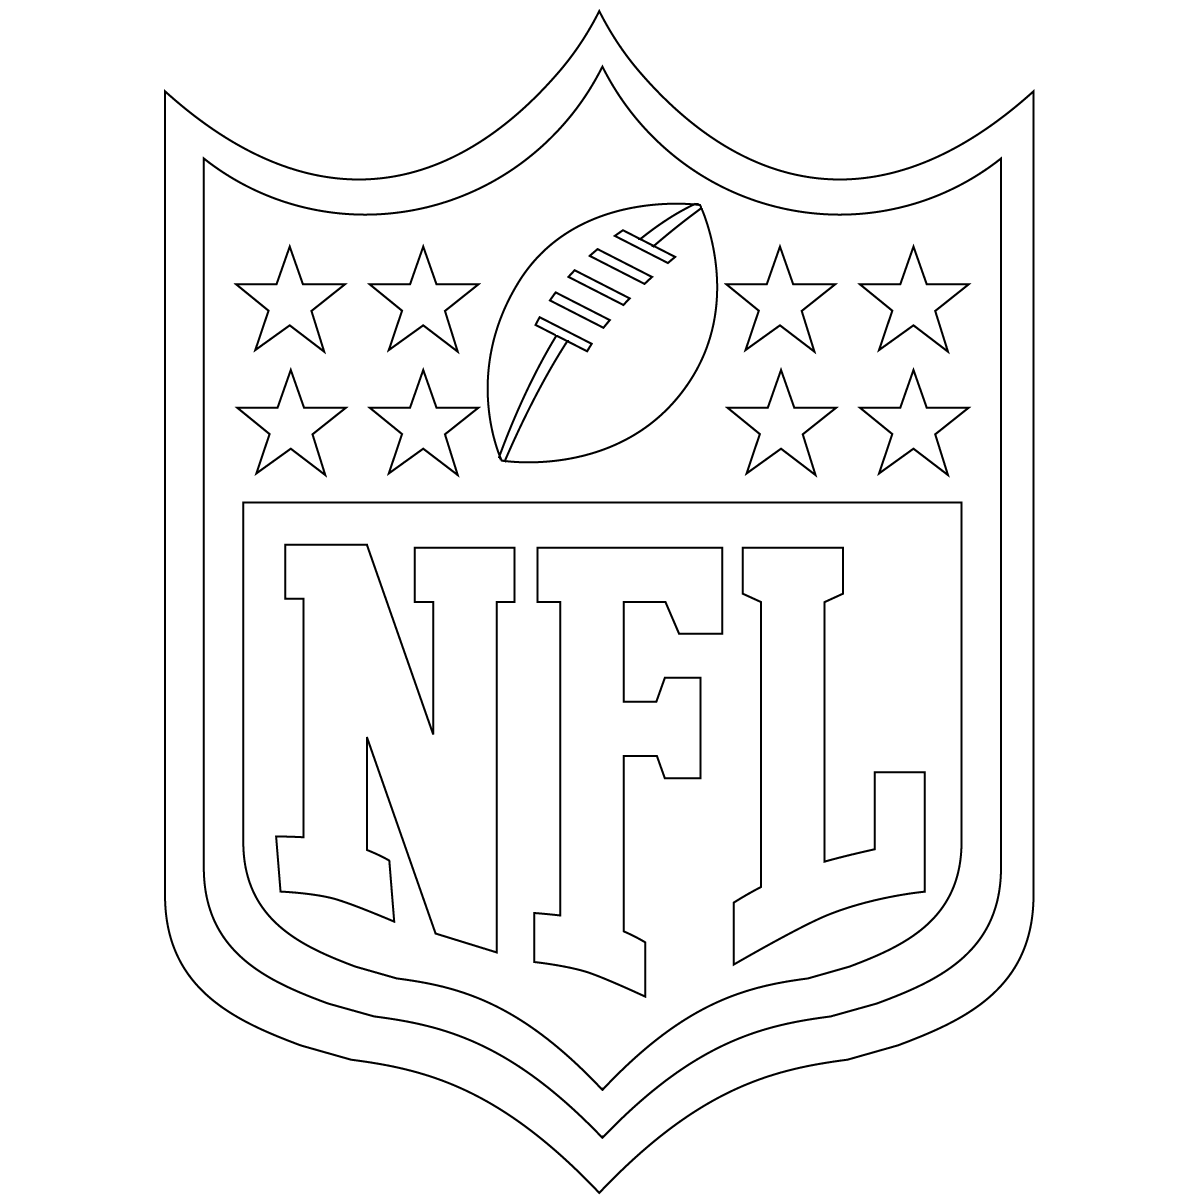 Coloring Pages Sports : Free printable football coloring pages for kids best